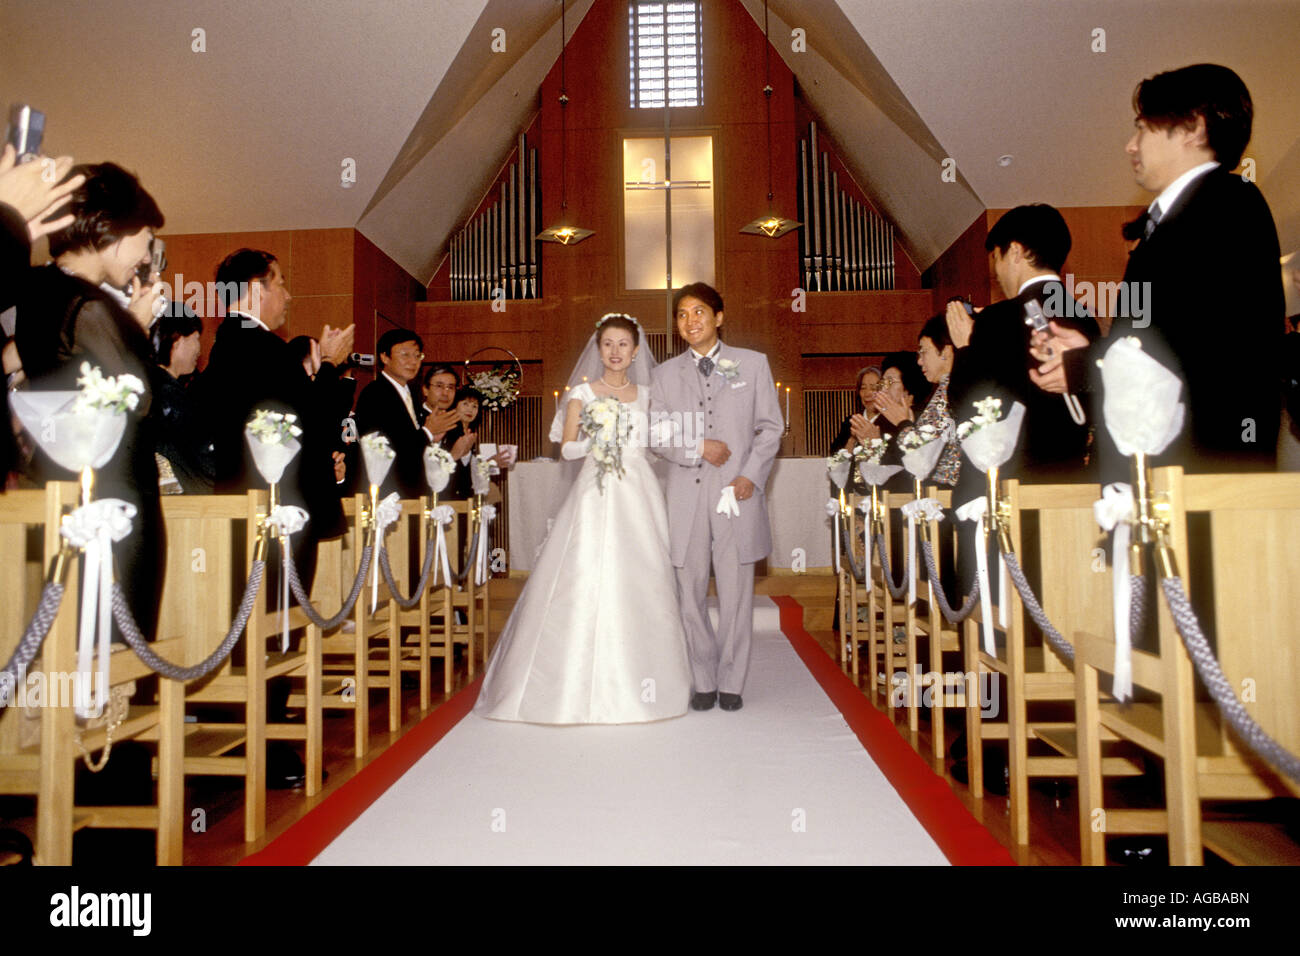 Japanese wedding blessings - A Japanese Wedding Couple In Catholic Church Within A Hotel Wearing Traditional Western Style Wedding Dress